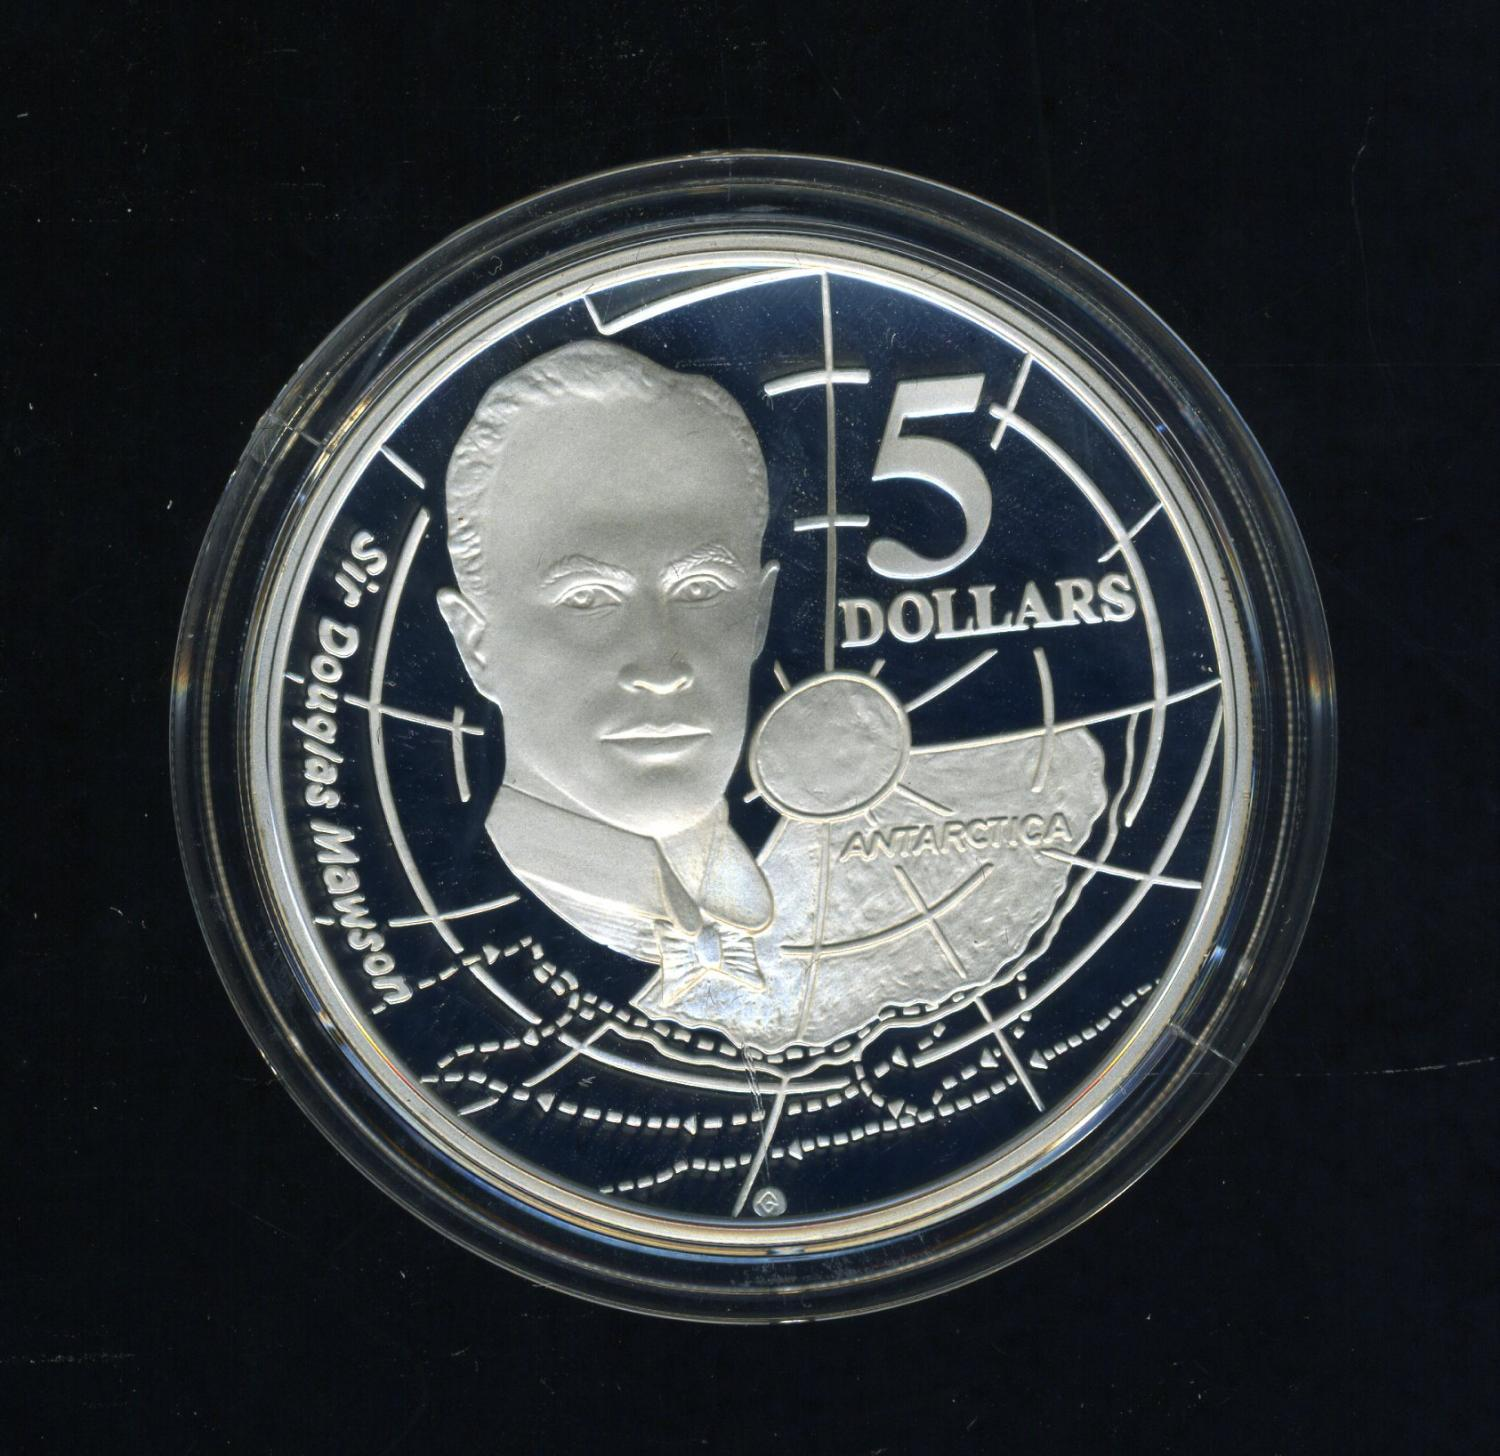 Thumbnail for 1994 Australian $5 Silver Coin From Masterpieces in Silver Set - Sir Douglas Mawson.  The Coin is Sterling Silver and contains over 1oz of Pure Silver.